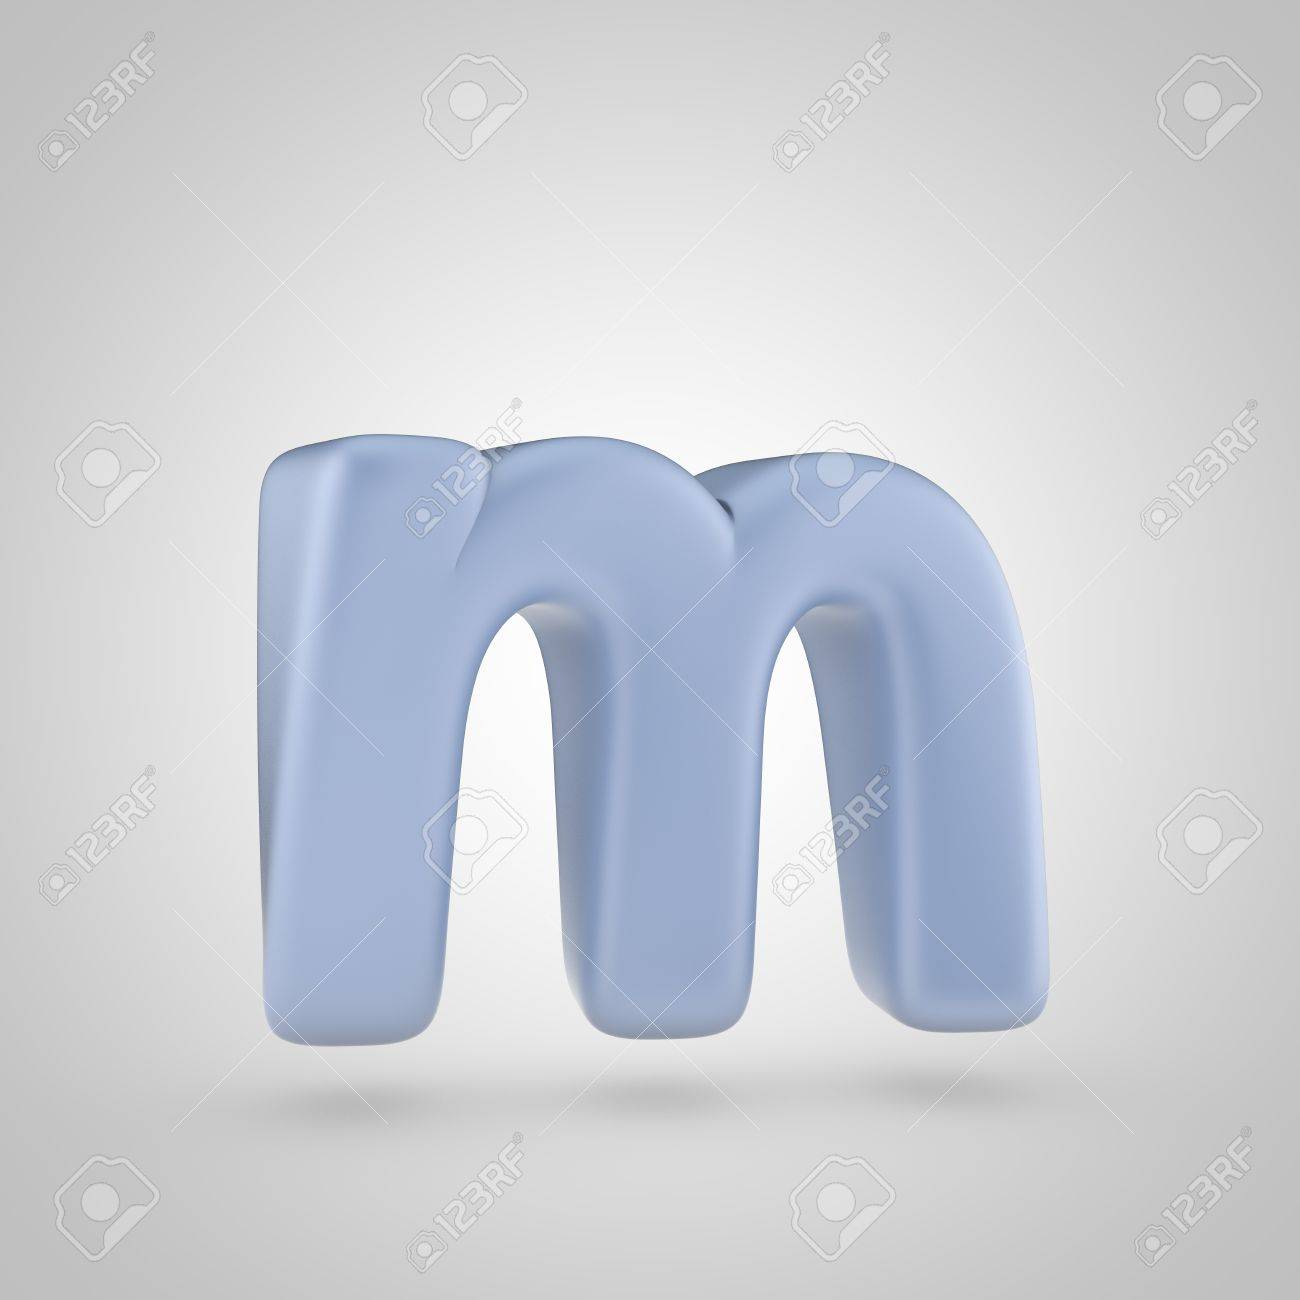 serenity color letter m lowercase 3d render of bubble blue font isolated on white background